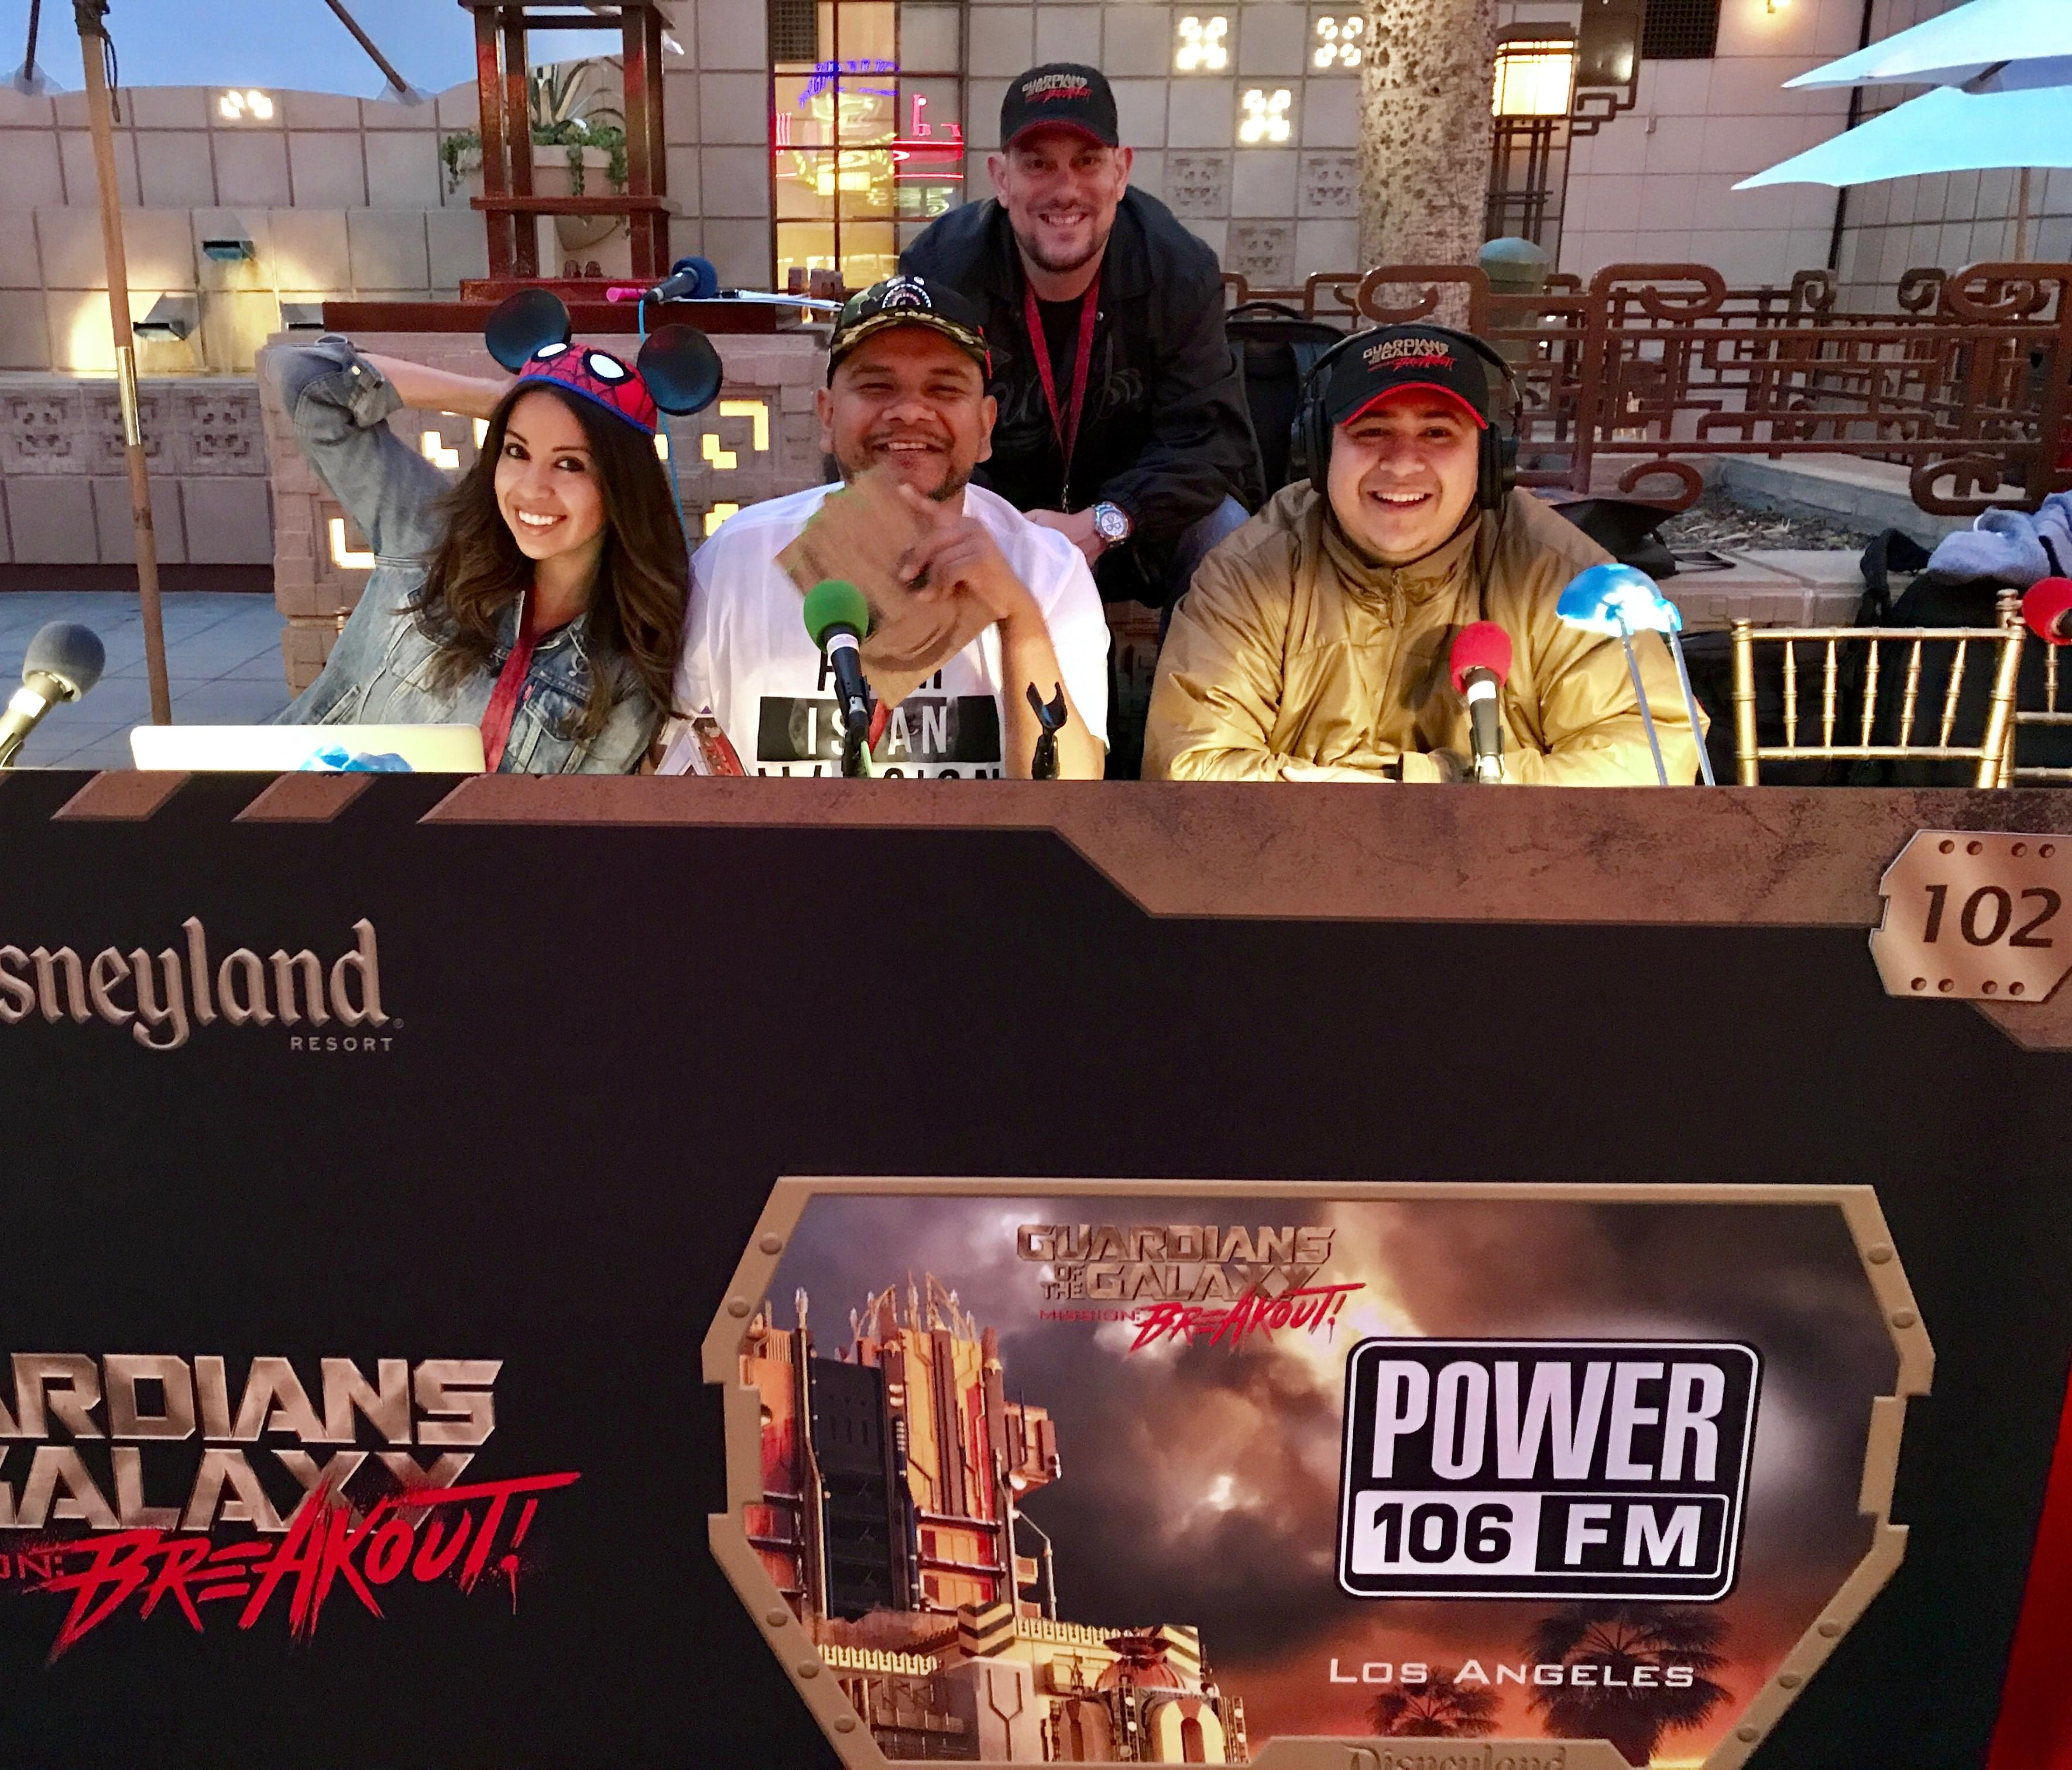 #TheCruzShow Broadcasted Live from Disneyland